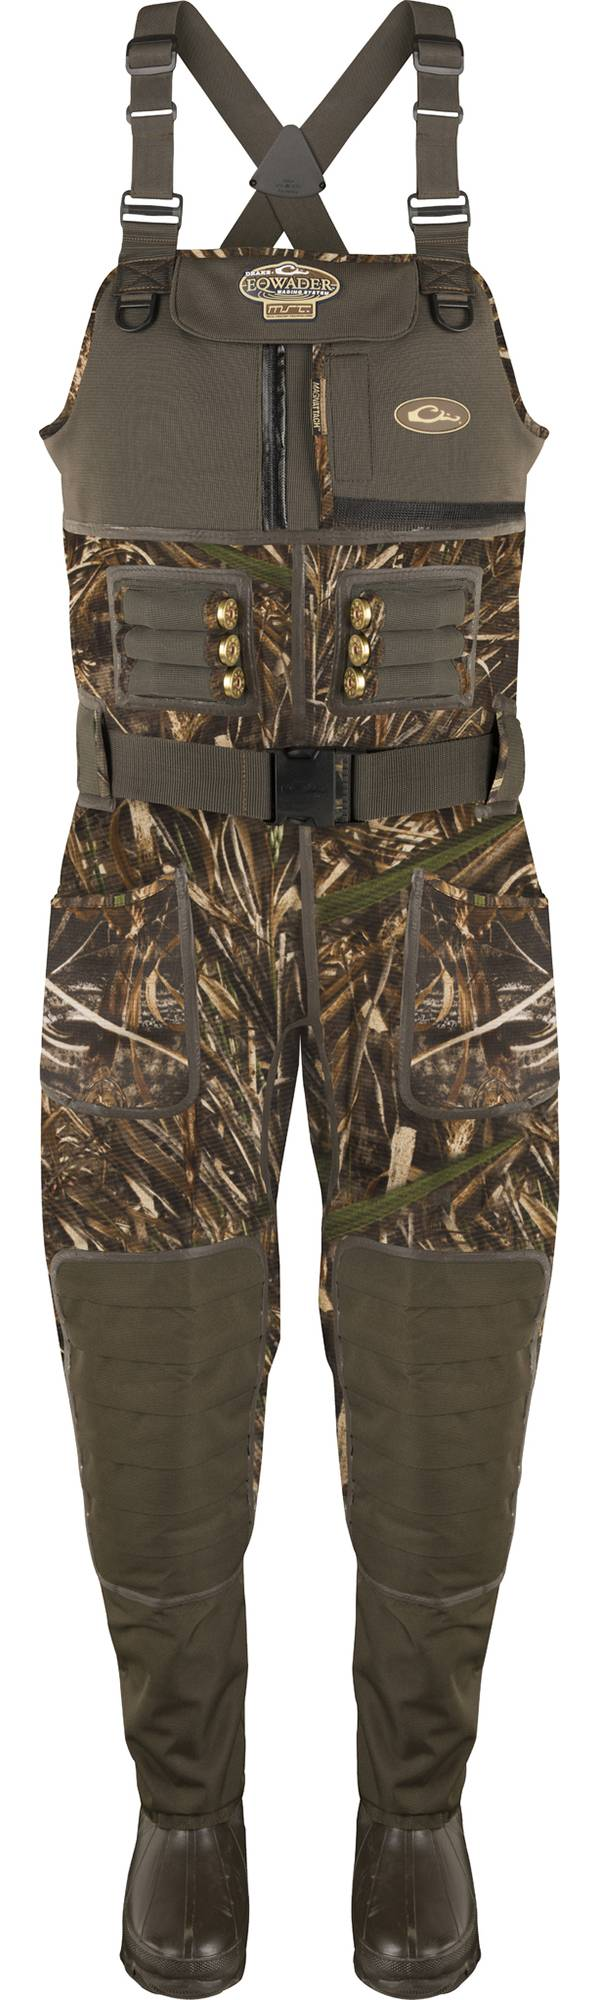 Drake Waterfowl MST Eqwader 2.0 Chest Waders product image